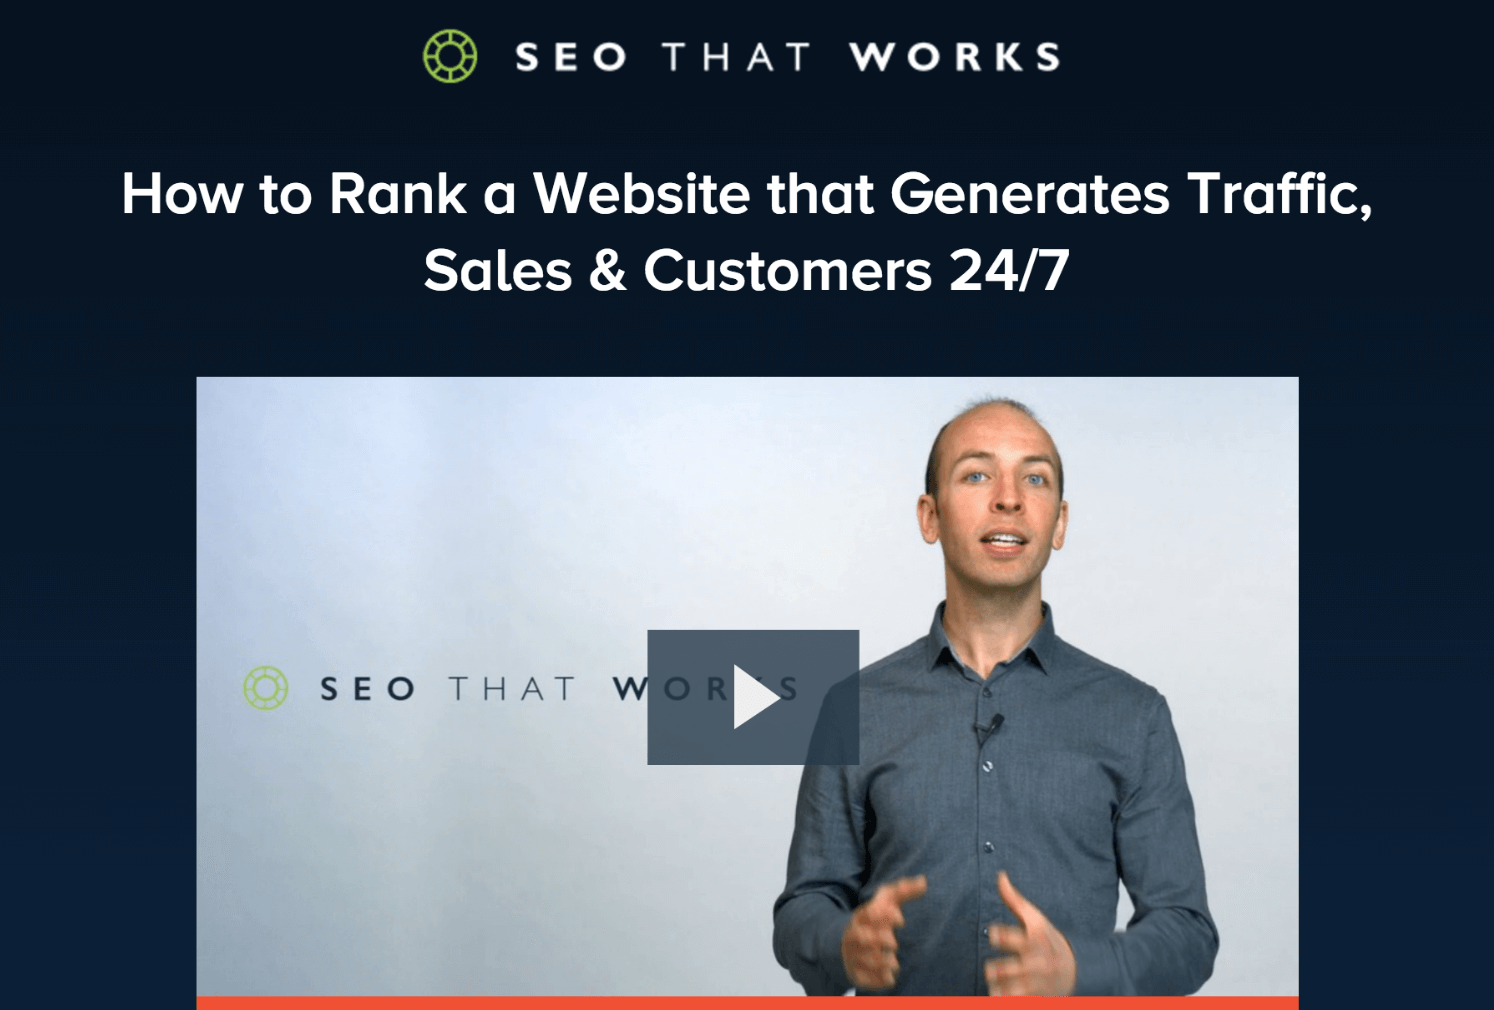 seo-that-works